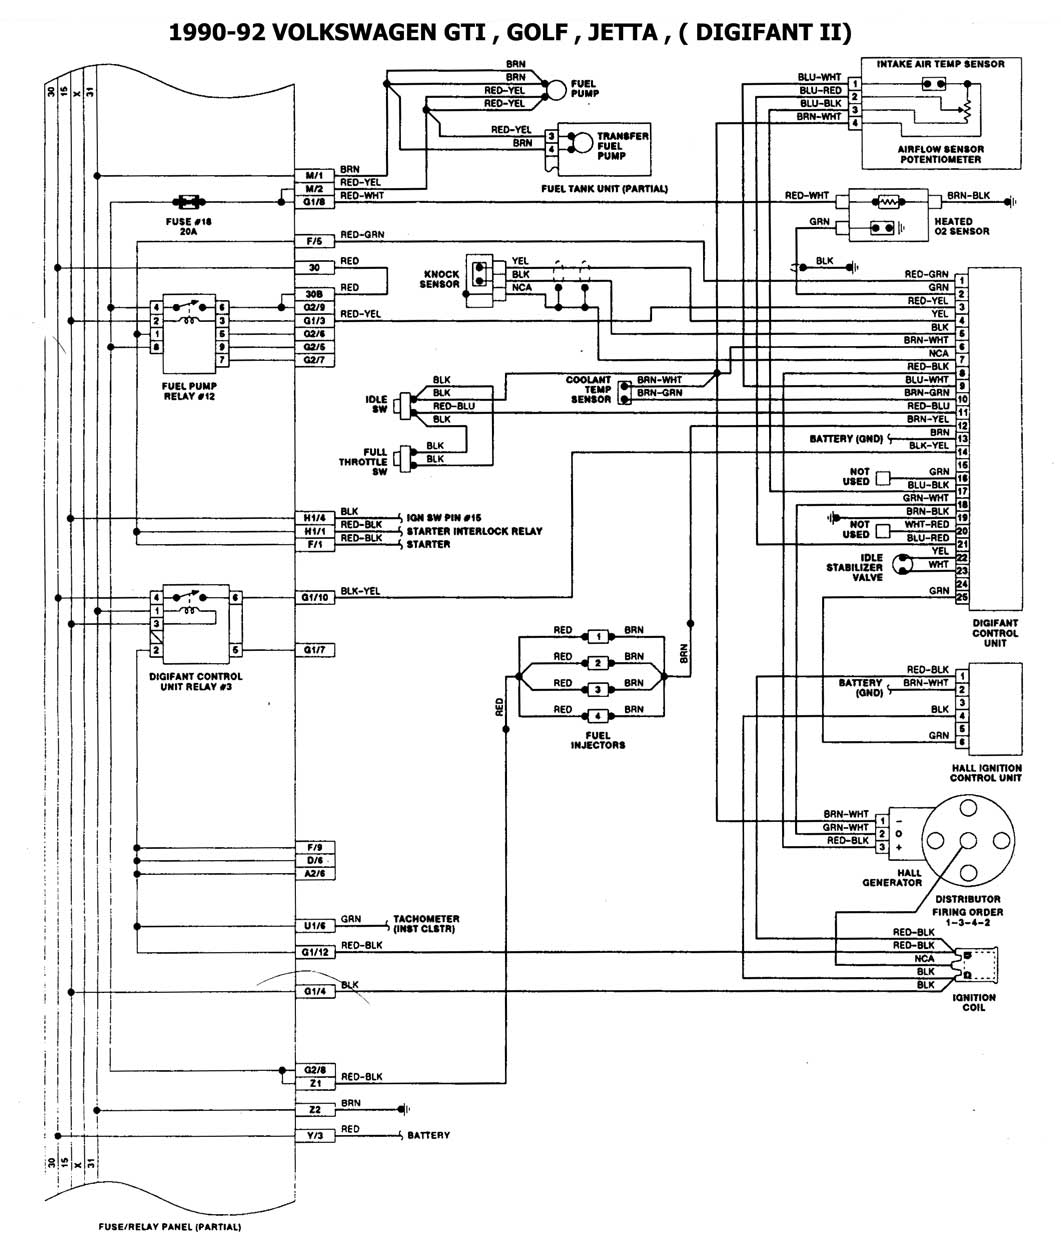 Diagrama De Ecu Vw Jetta 1 8l